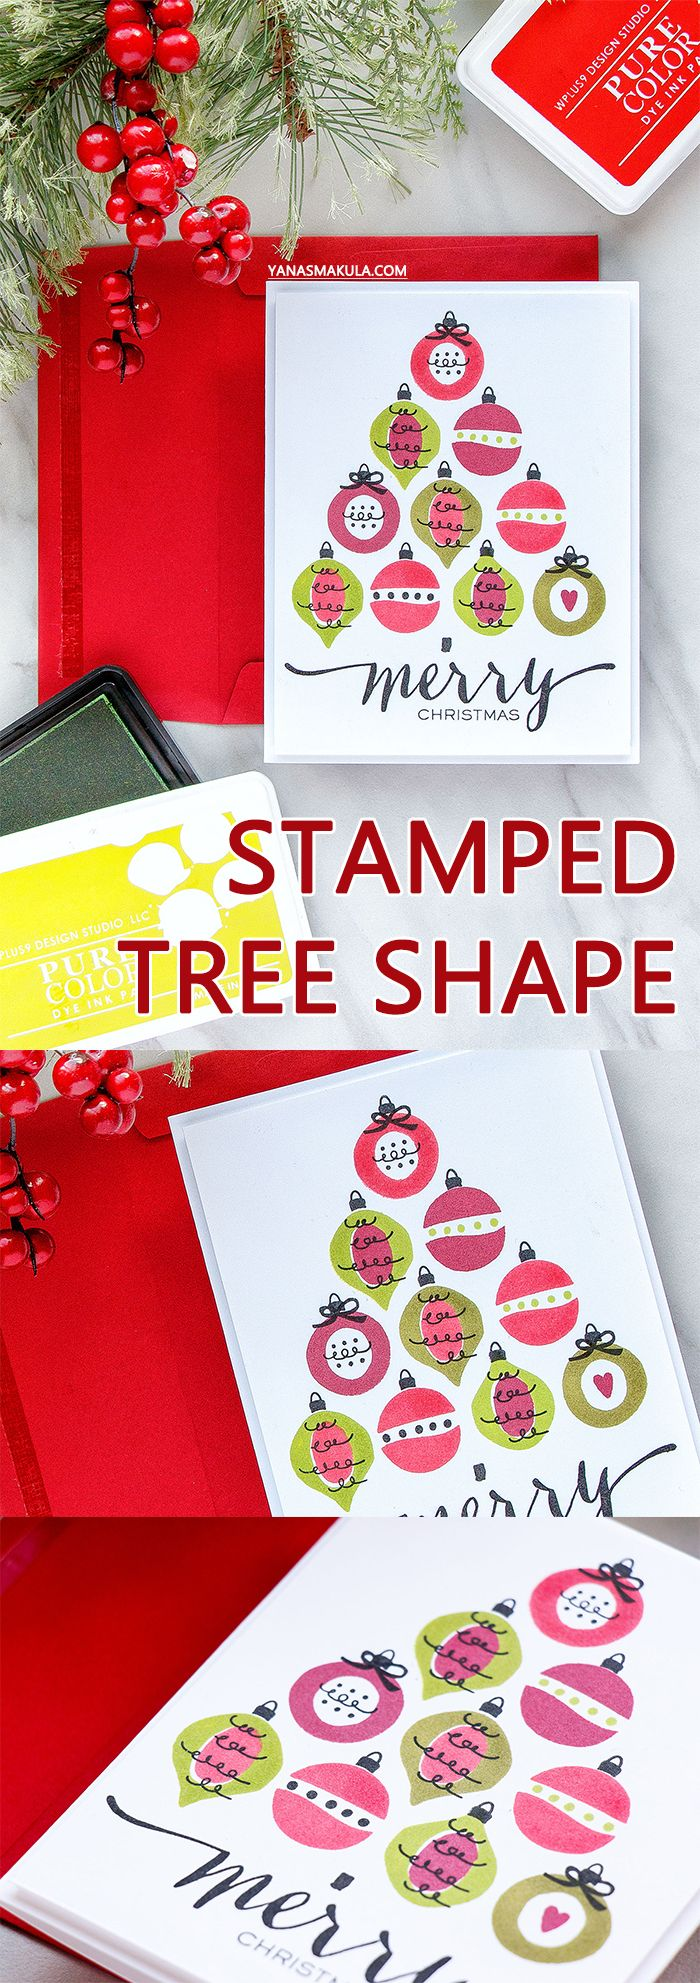 WPlus9   Stamped Tree Shape Card with Holiday Trimmings Stamp. Handmade card by Yana Smakula #cardmaking #stamping #wplus9